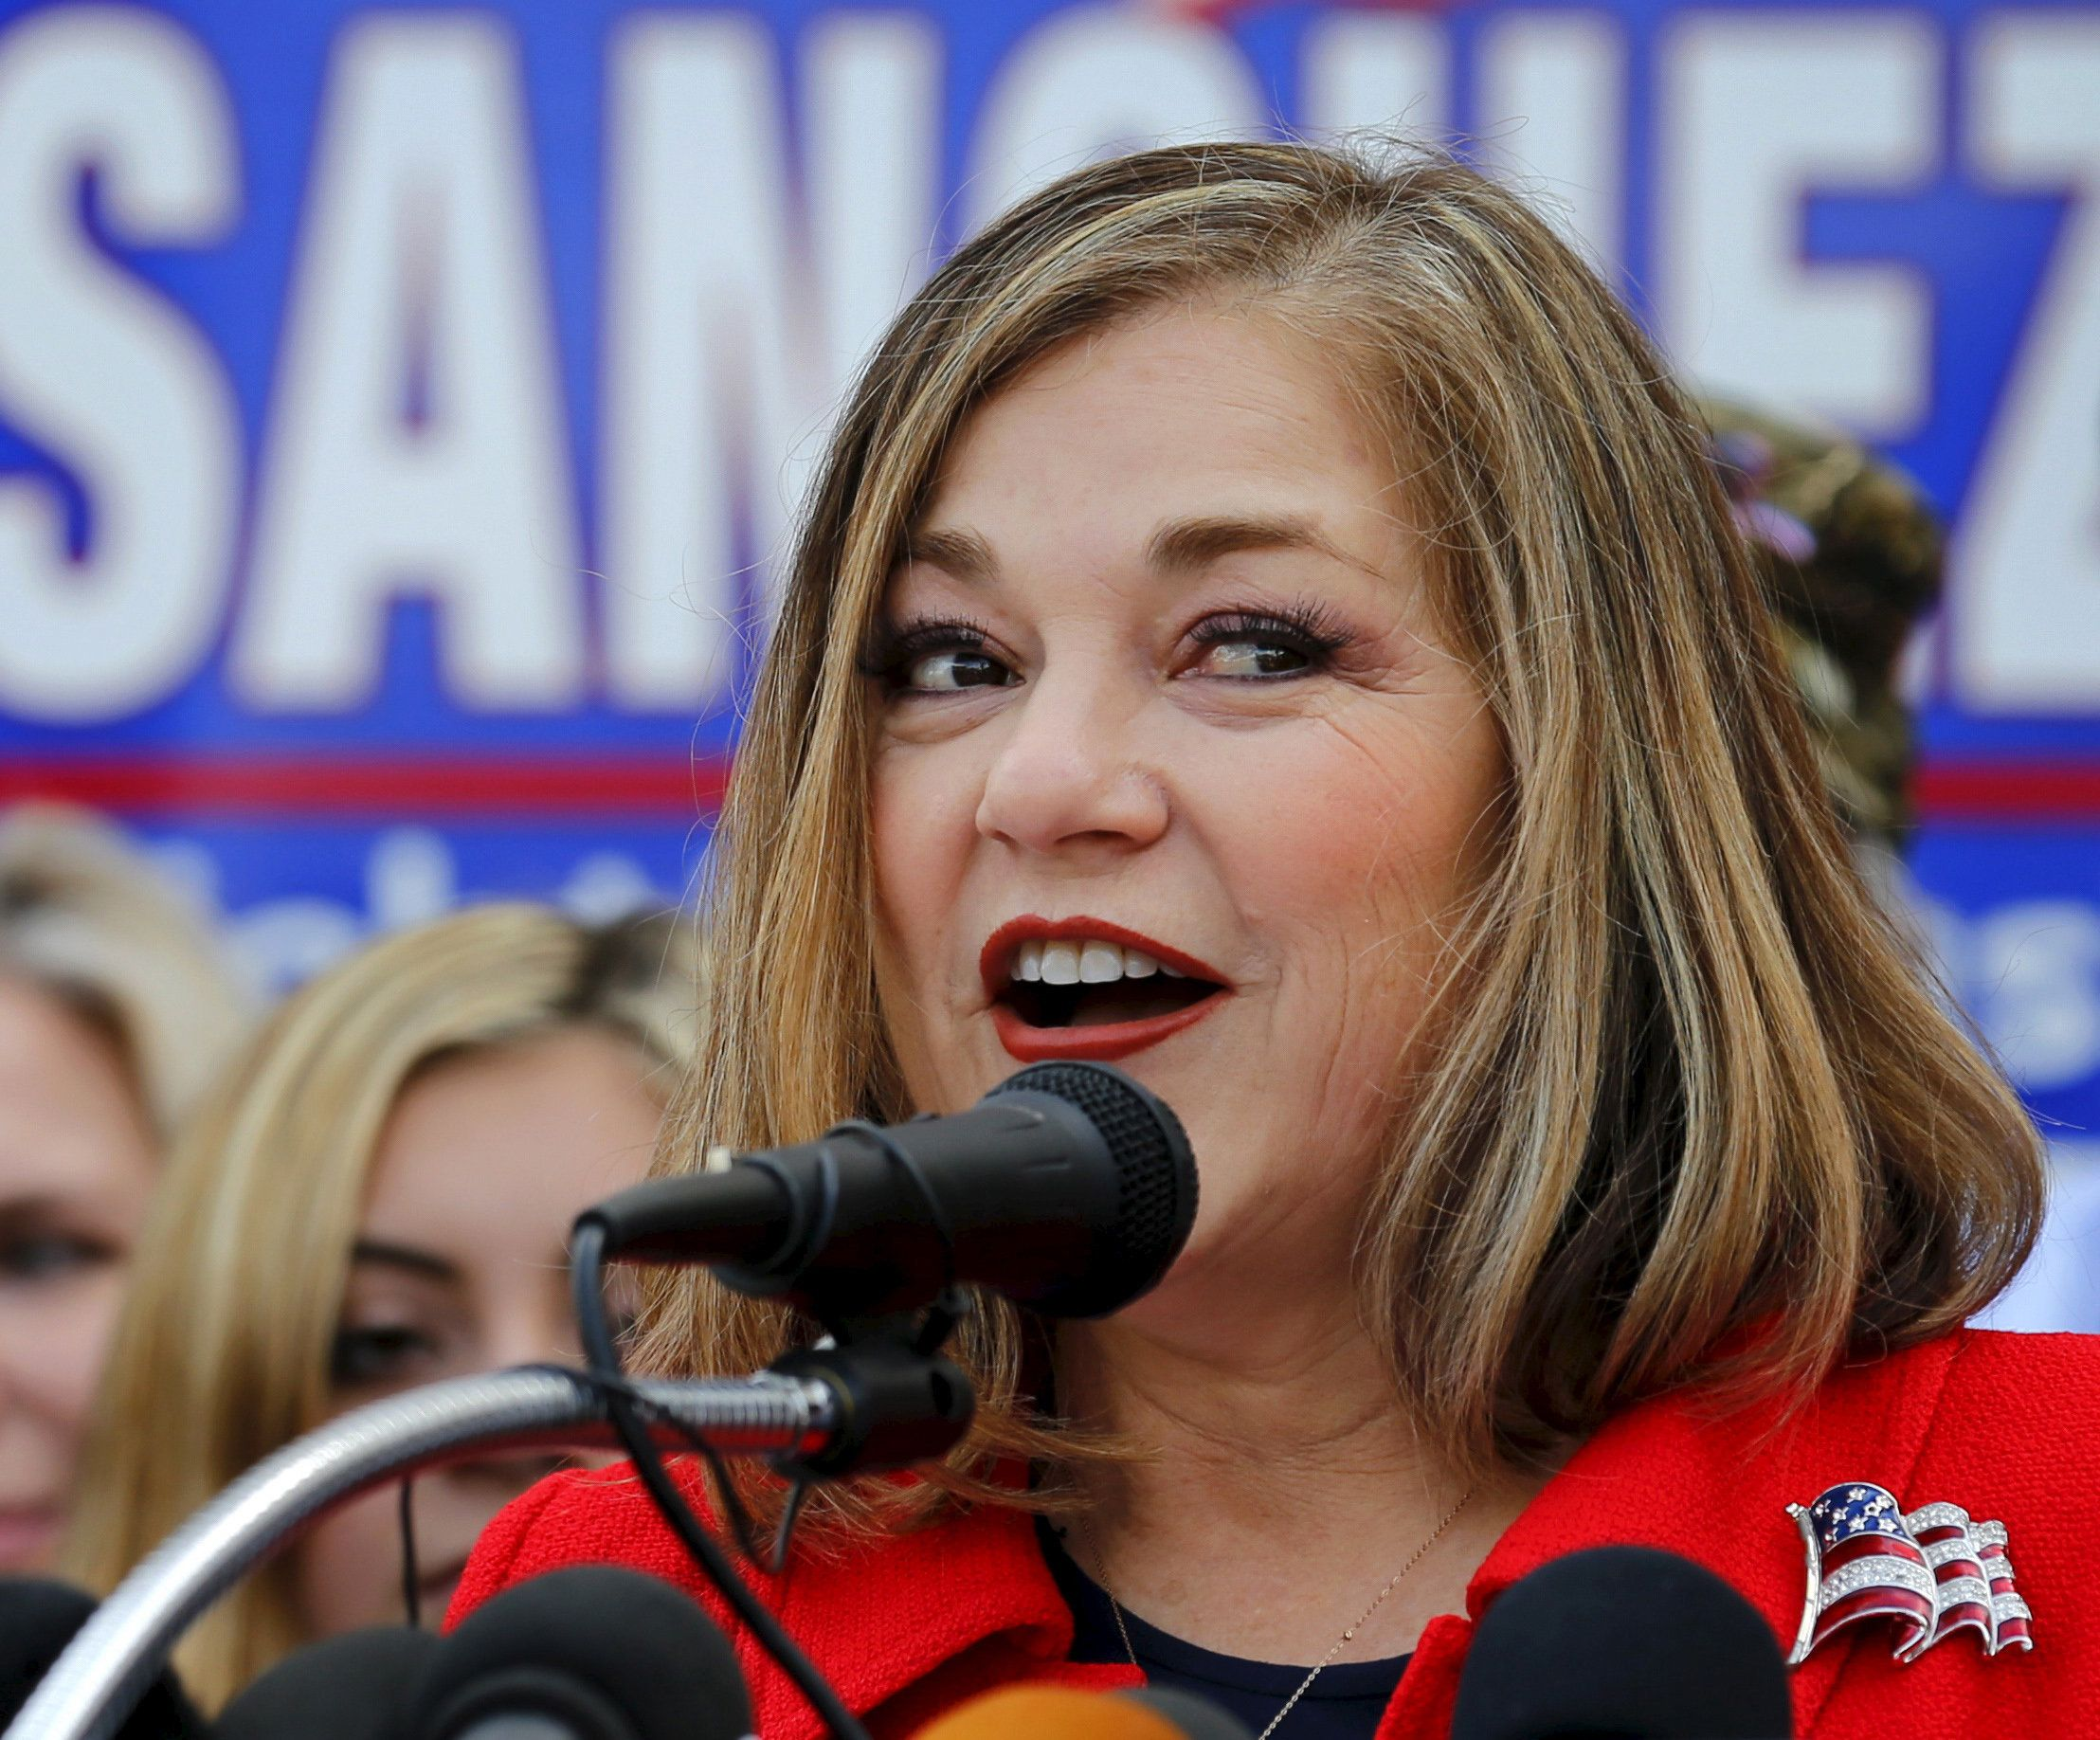 Rep. Loretta Sanchez (D-Garden Grove) announces she will run for the U.S. Senate seat of vacating California Senator Barbara Boxer during an event in Santa Ana, California, U.S. May 14, 2015.  REUTERS/Mike Blake/File Photo